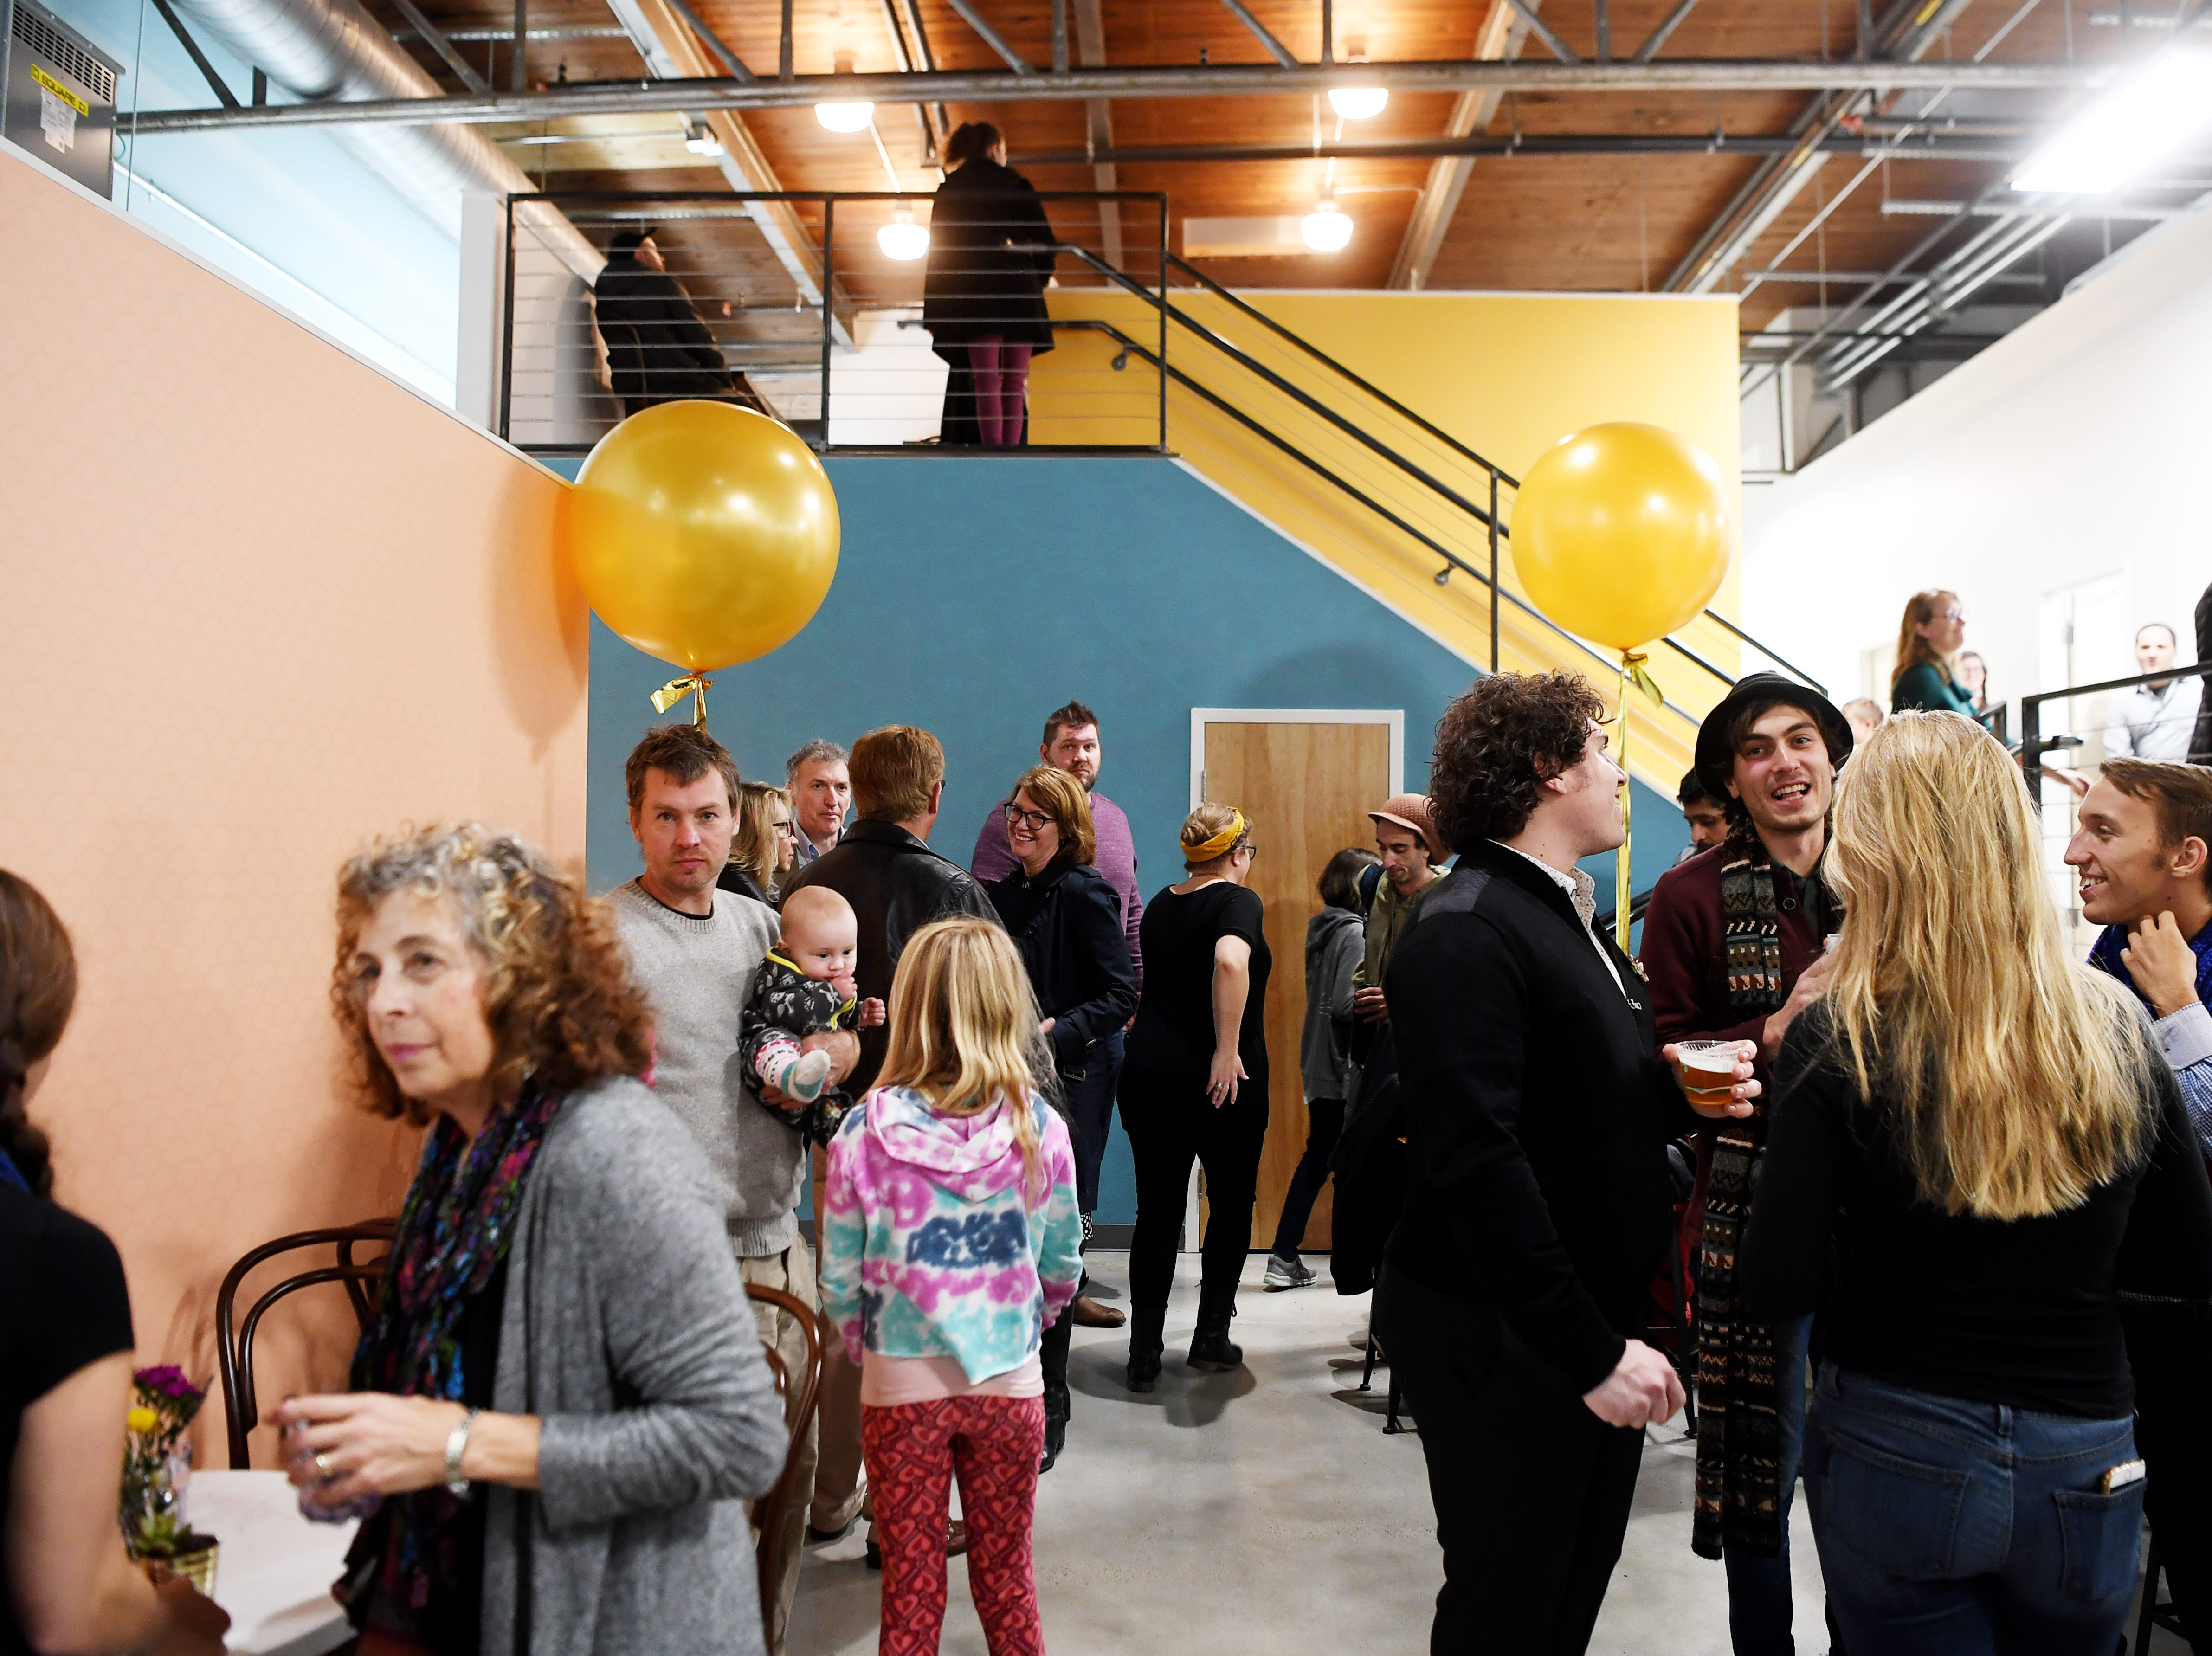 The French Broad Chocolate Factory hosted an opening party Nov. 14, 2018 after moving into RAMP Studios.